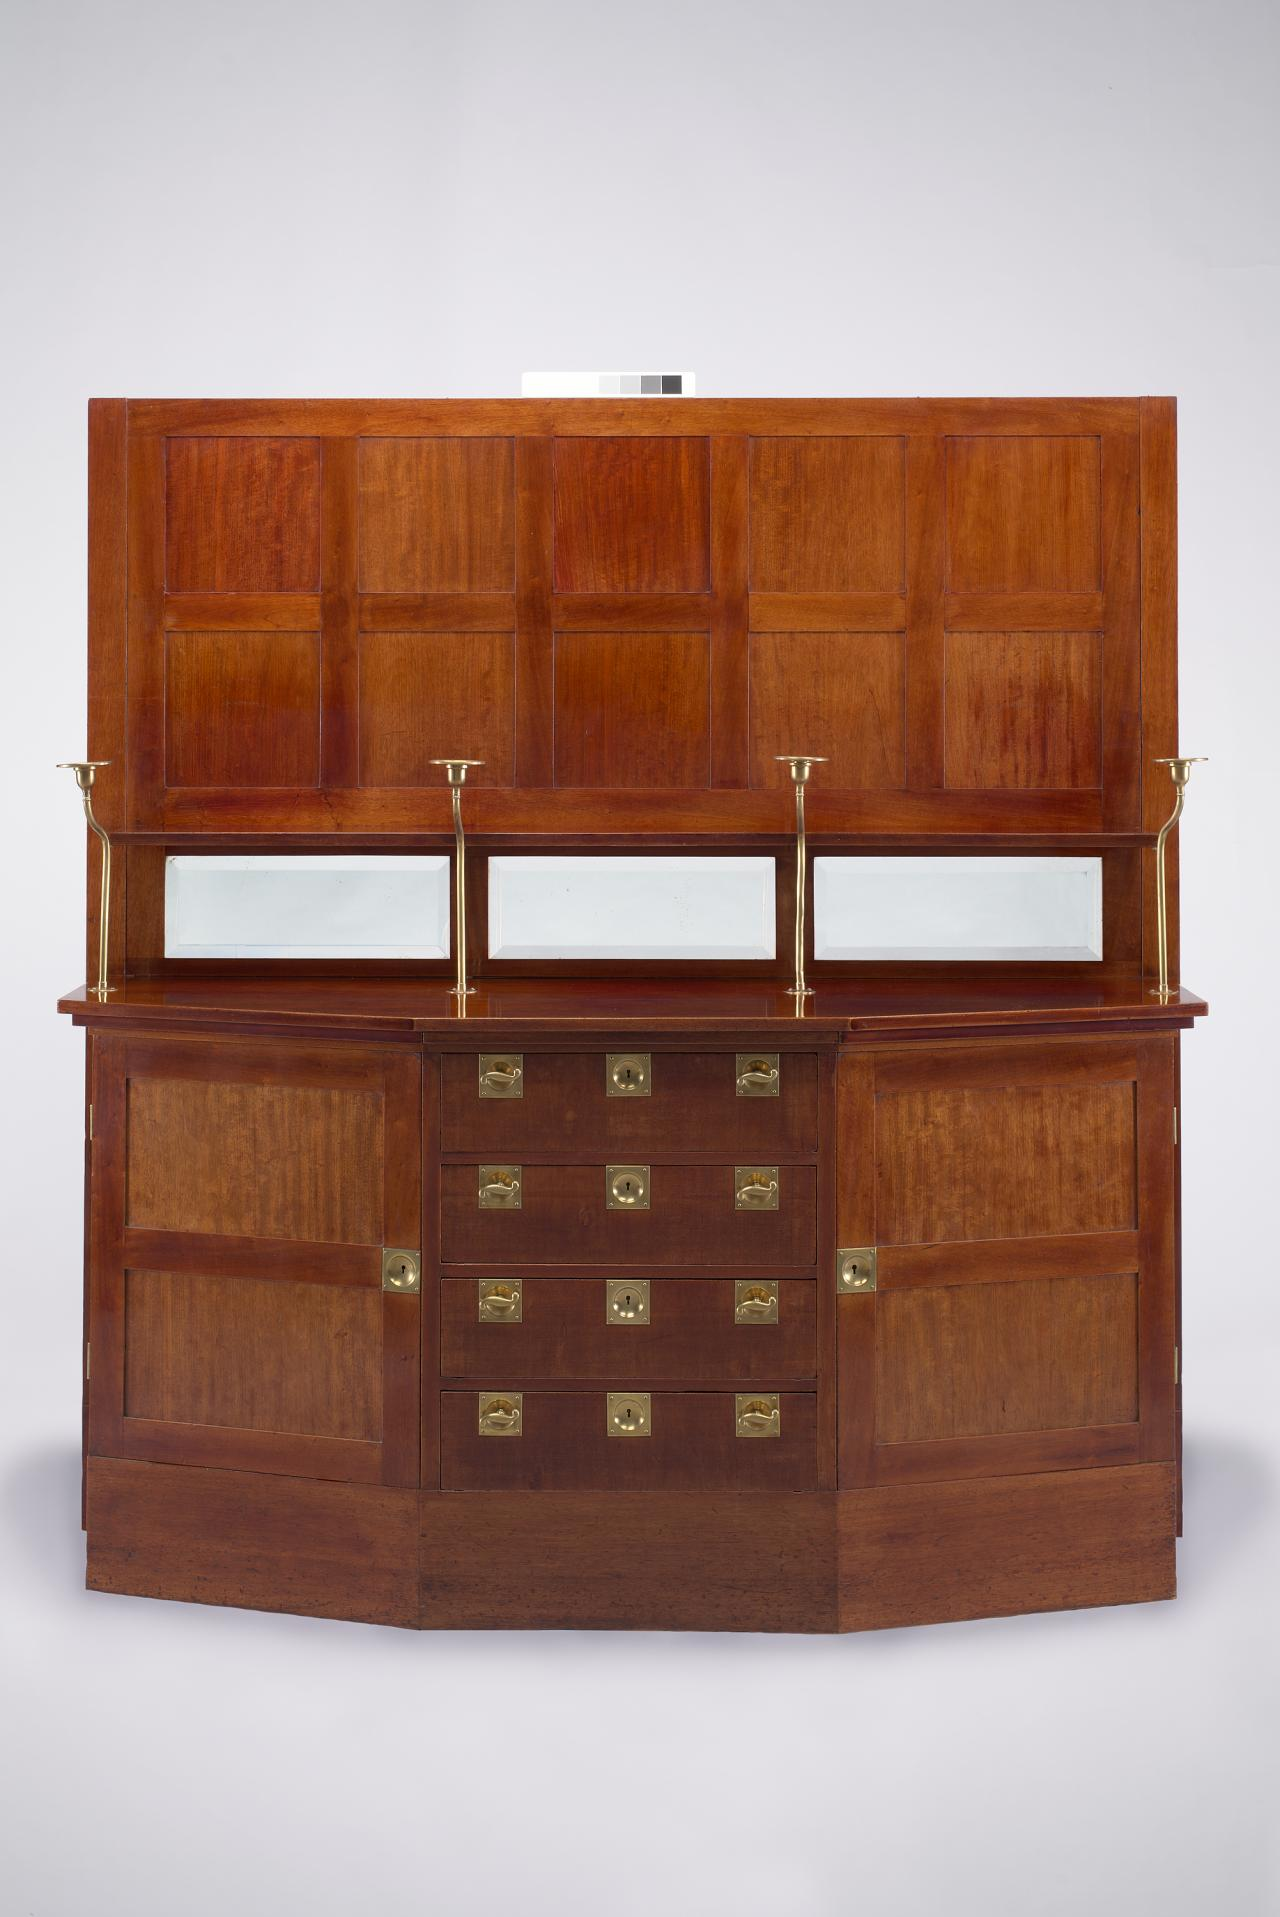 Sideboard, from the Langer apartment